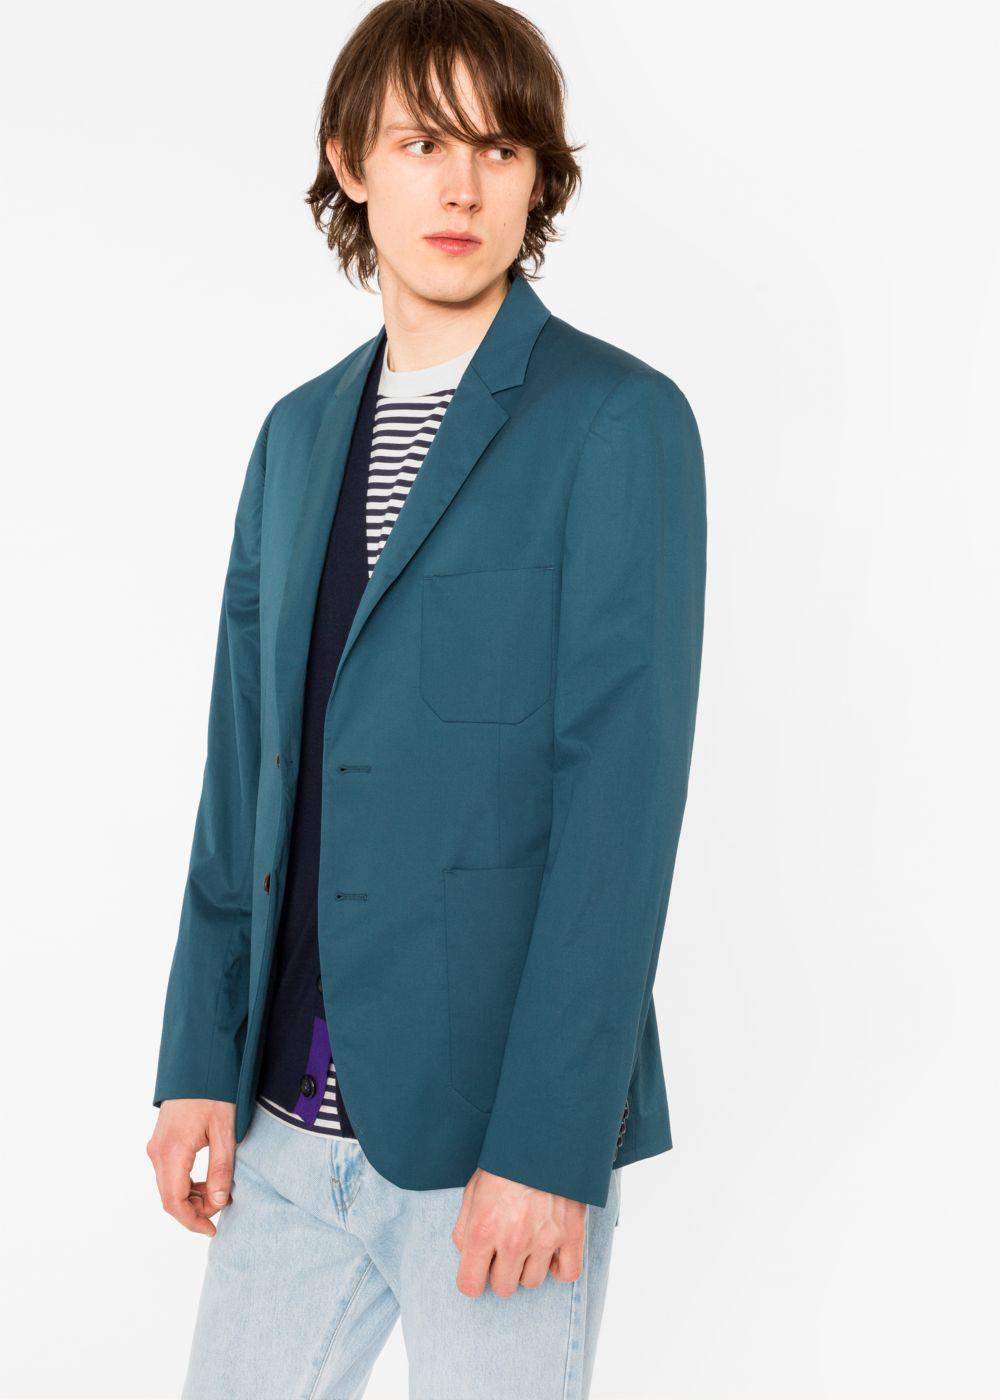 Paul Smith Men's Slim-Fit Dark Teal Stretch-Cotton Buggy-Lined Blazer